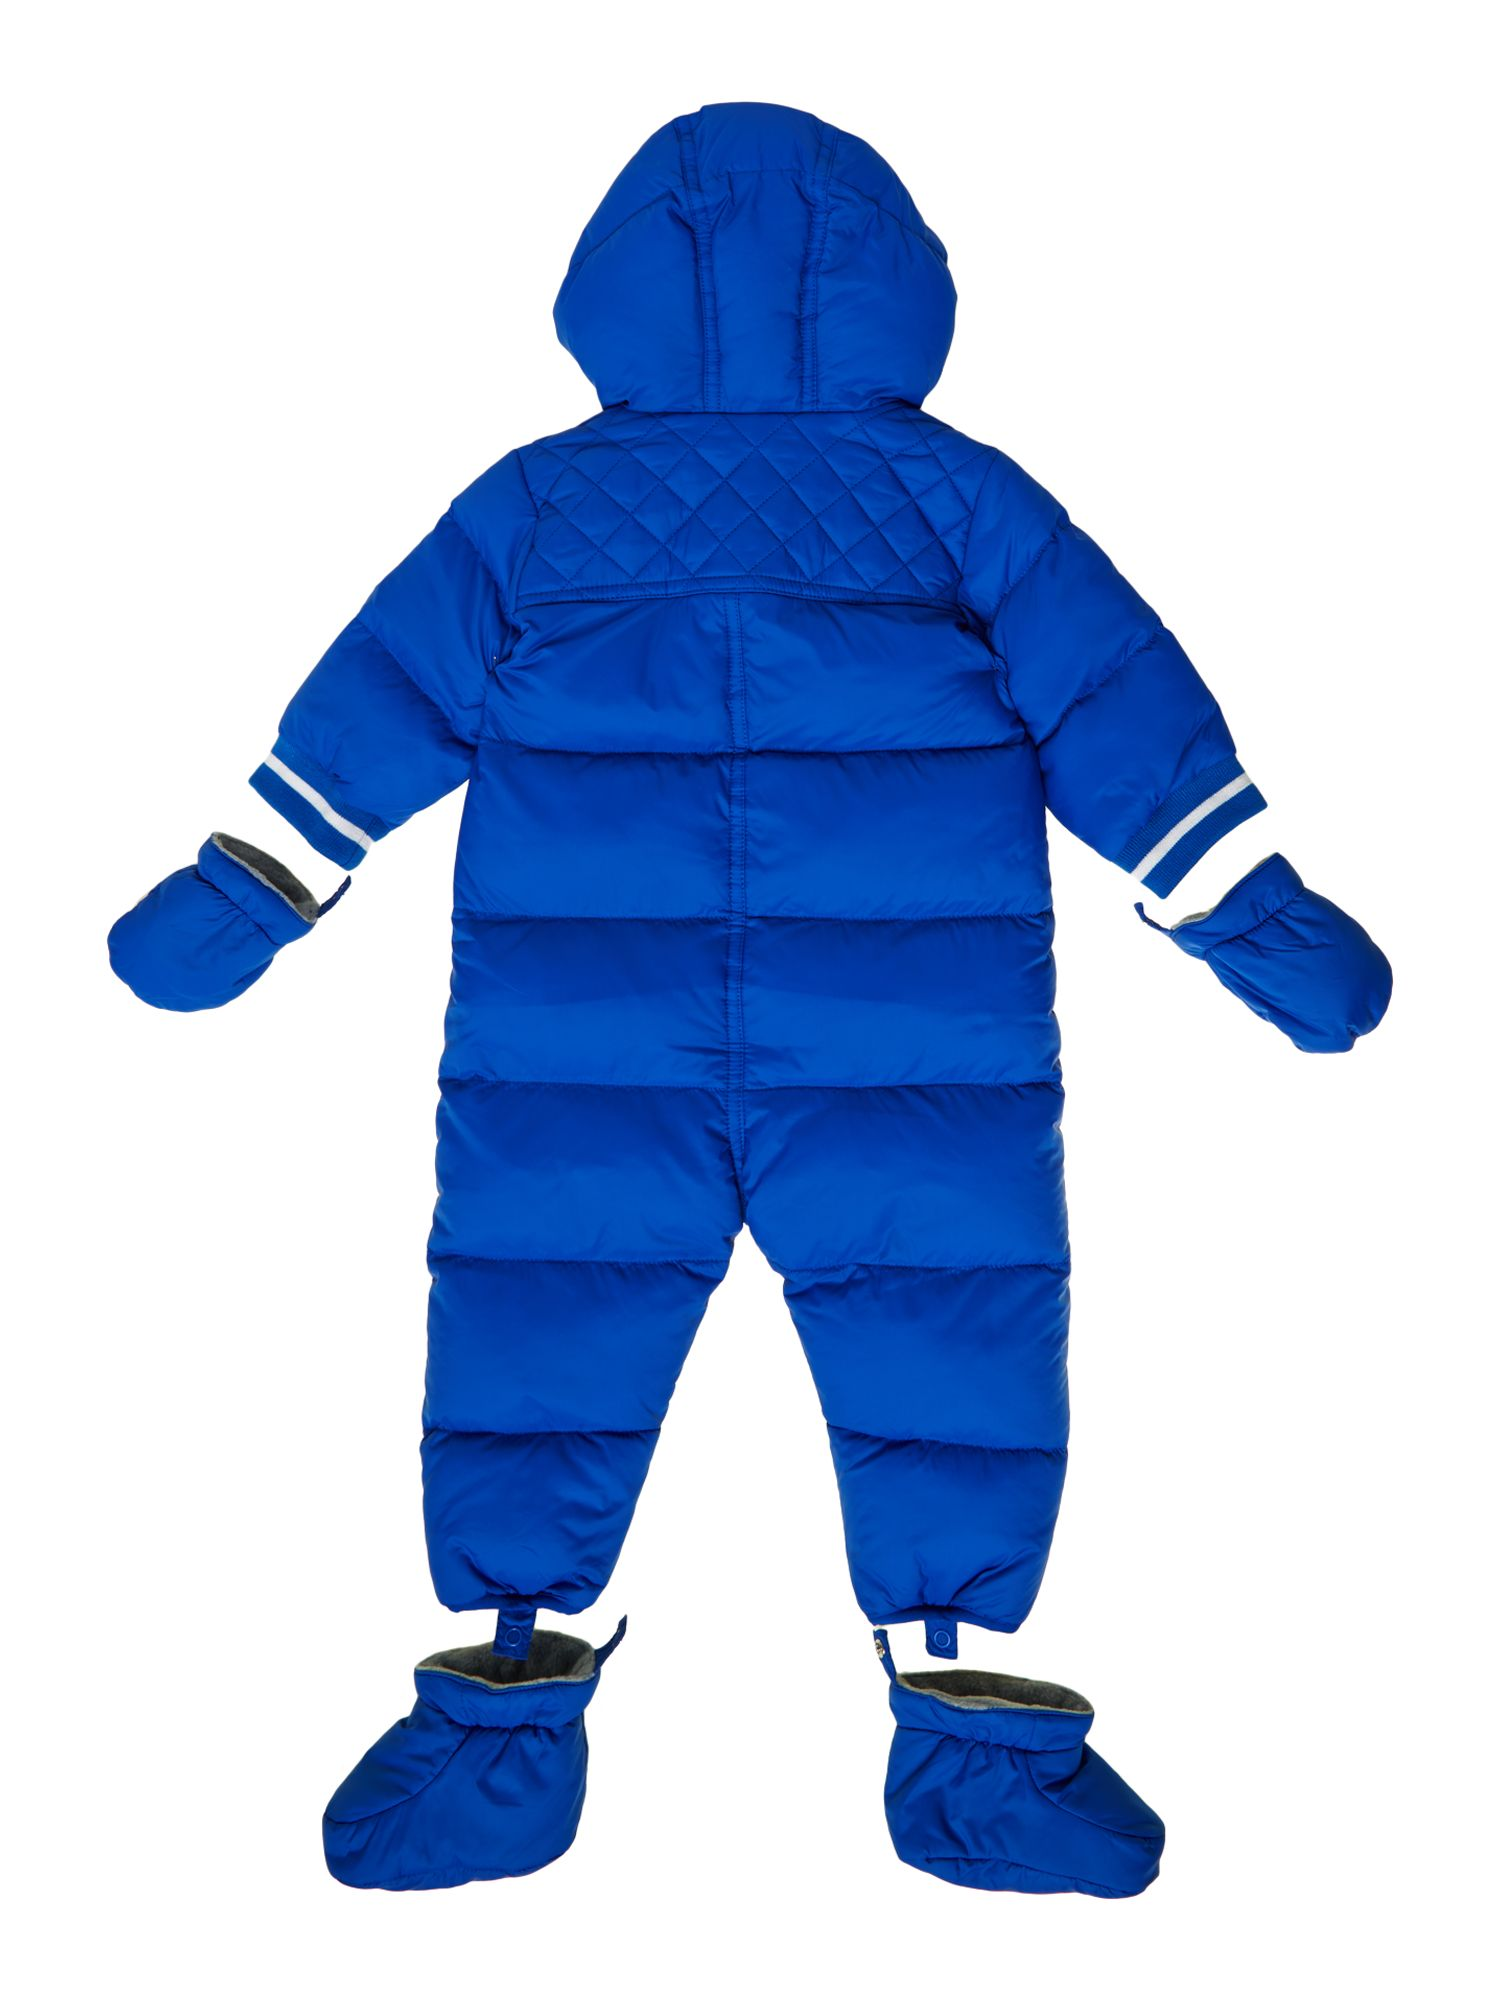 Boys snowsuit